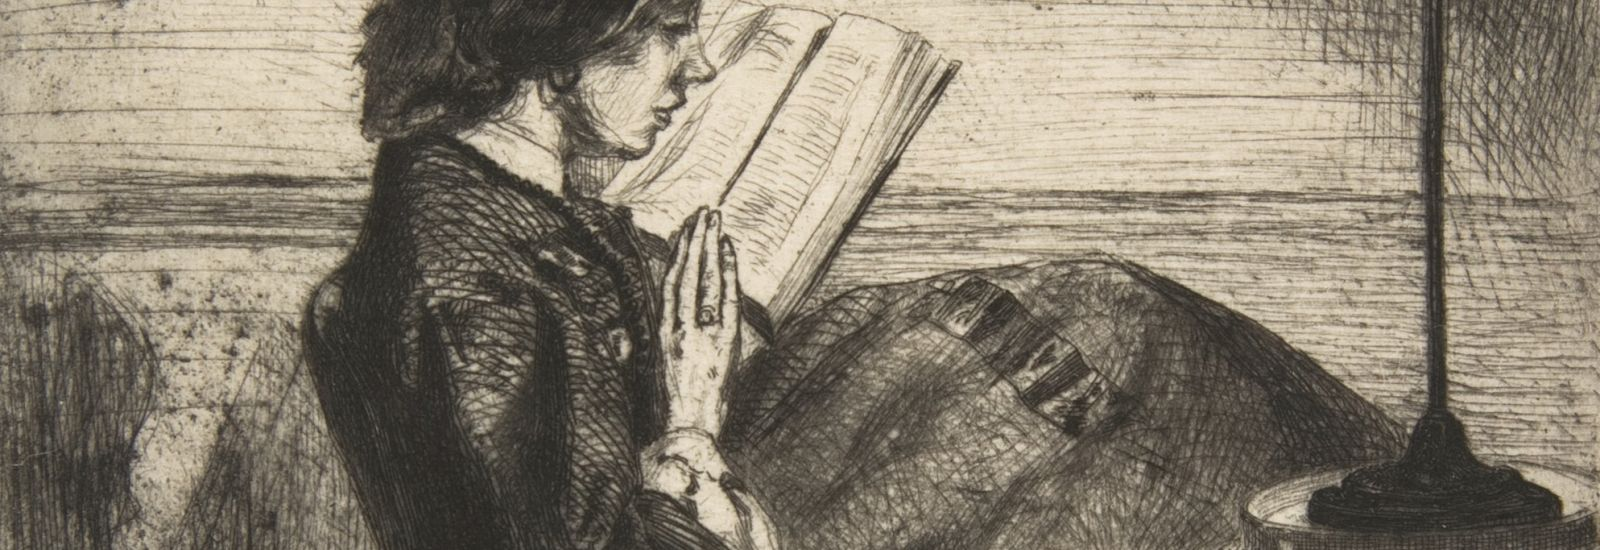 Sepia tone etching of woman reading a book by lamplight